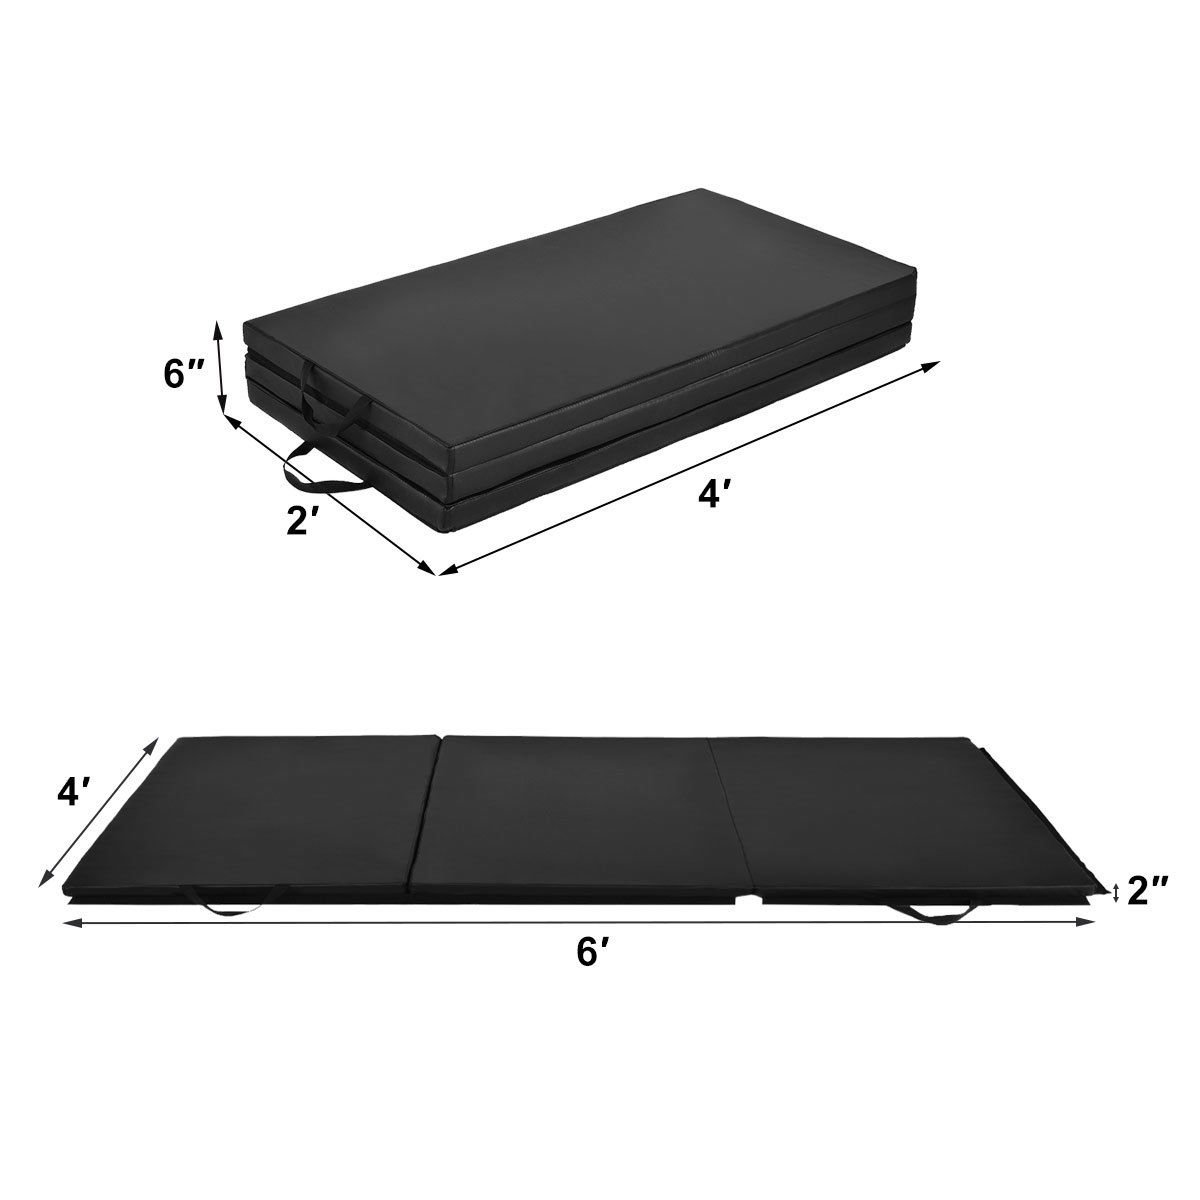 Giantex 6' x 4' Tri-Fold Gymnastics Mat Thick Folding Panel for Gym Fitness Exercise (Black) by Giantex (Image #6)